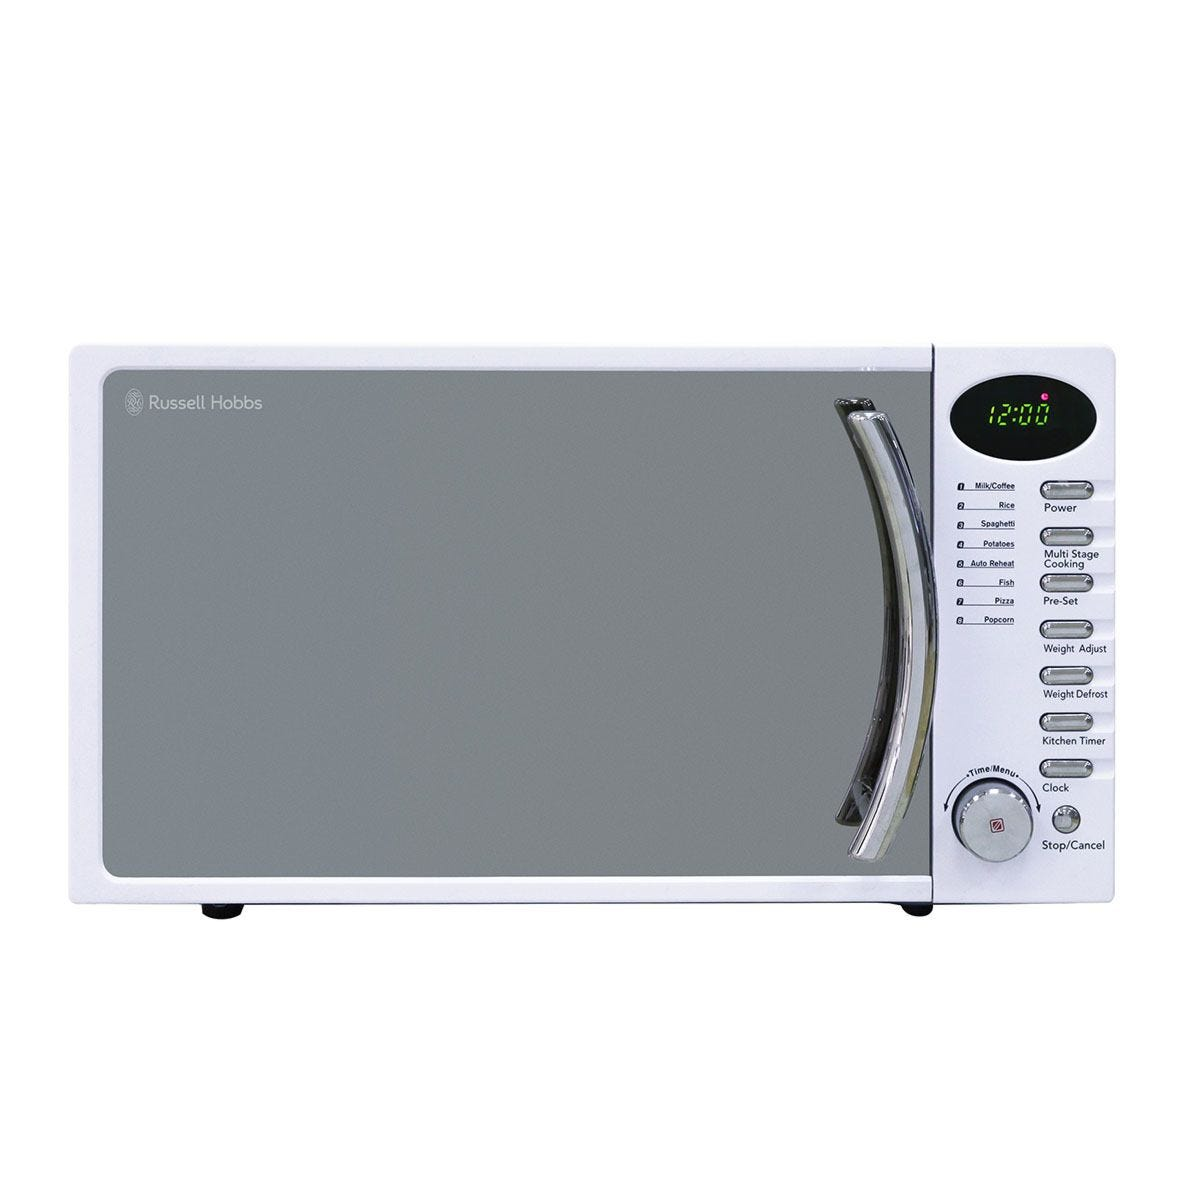 Auto Cook Functions Haden Touch Control Microwave Reheat White 25 Litre Defrost 900W